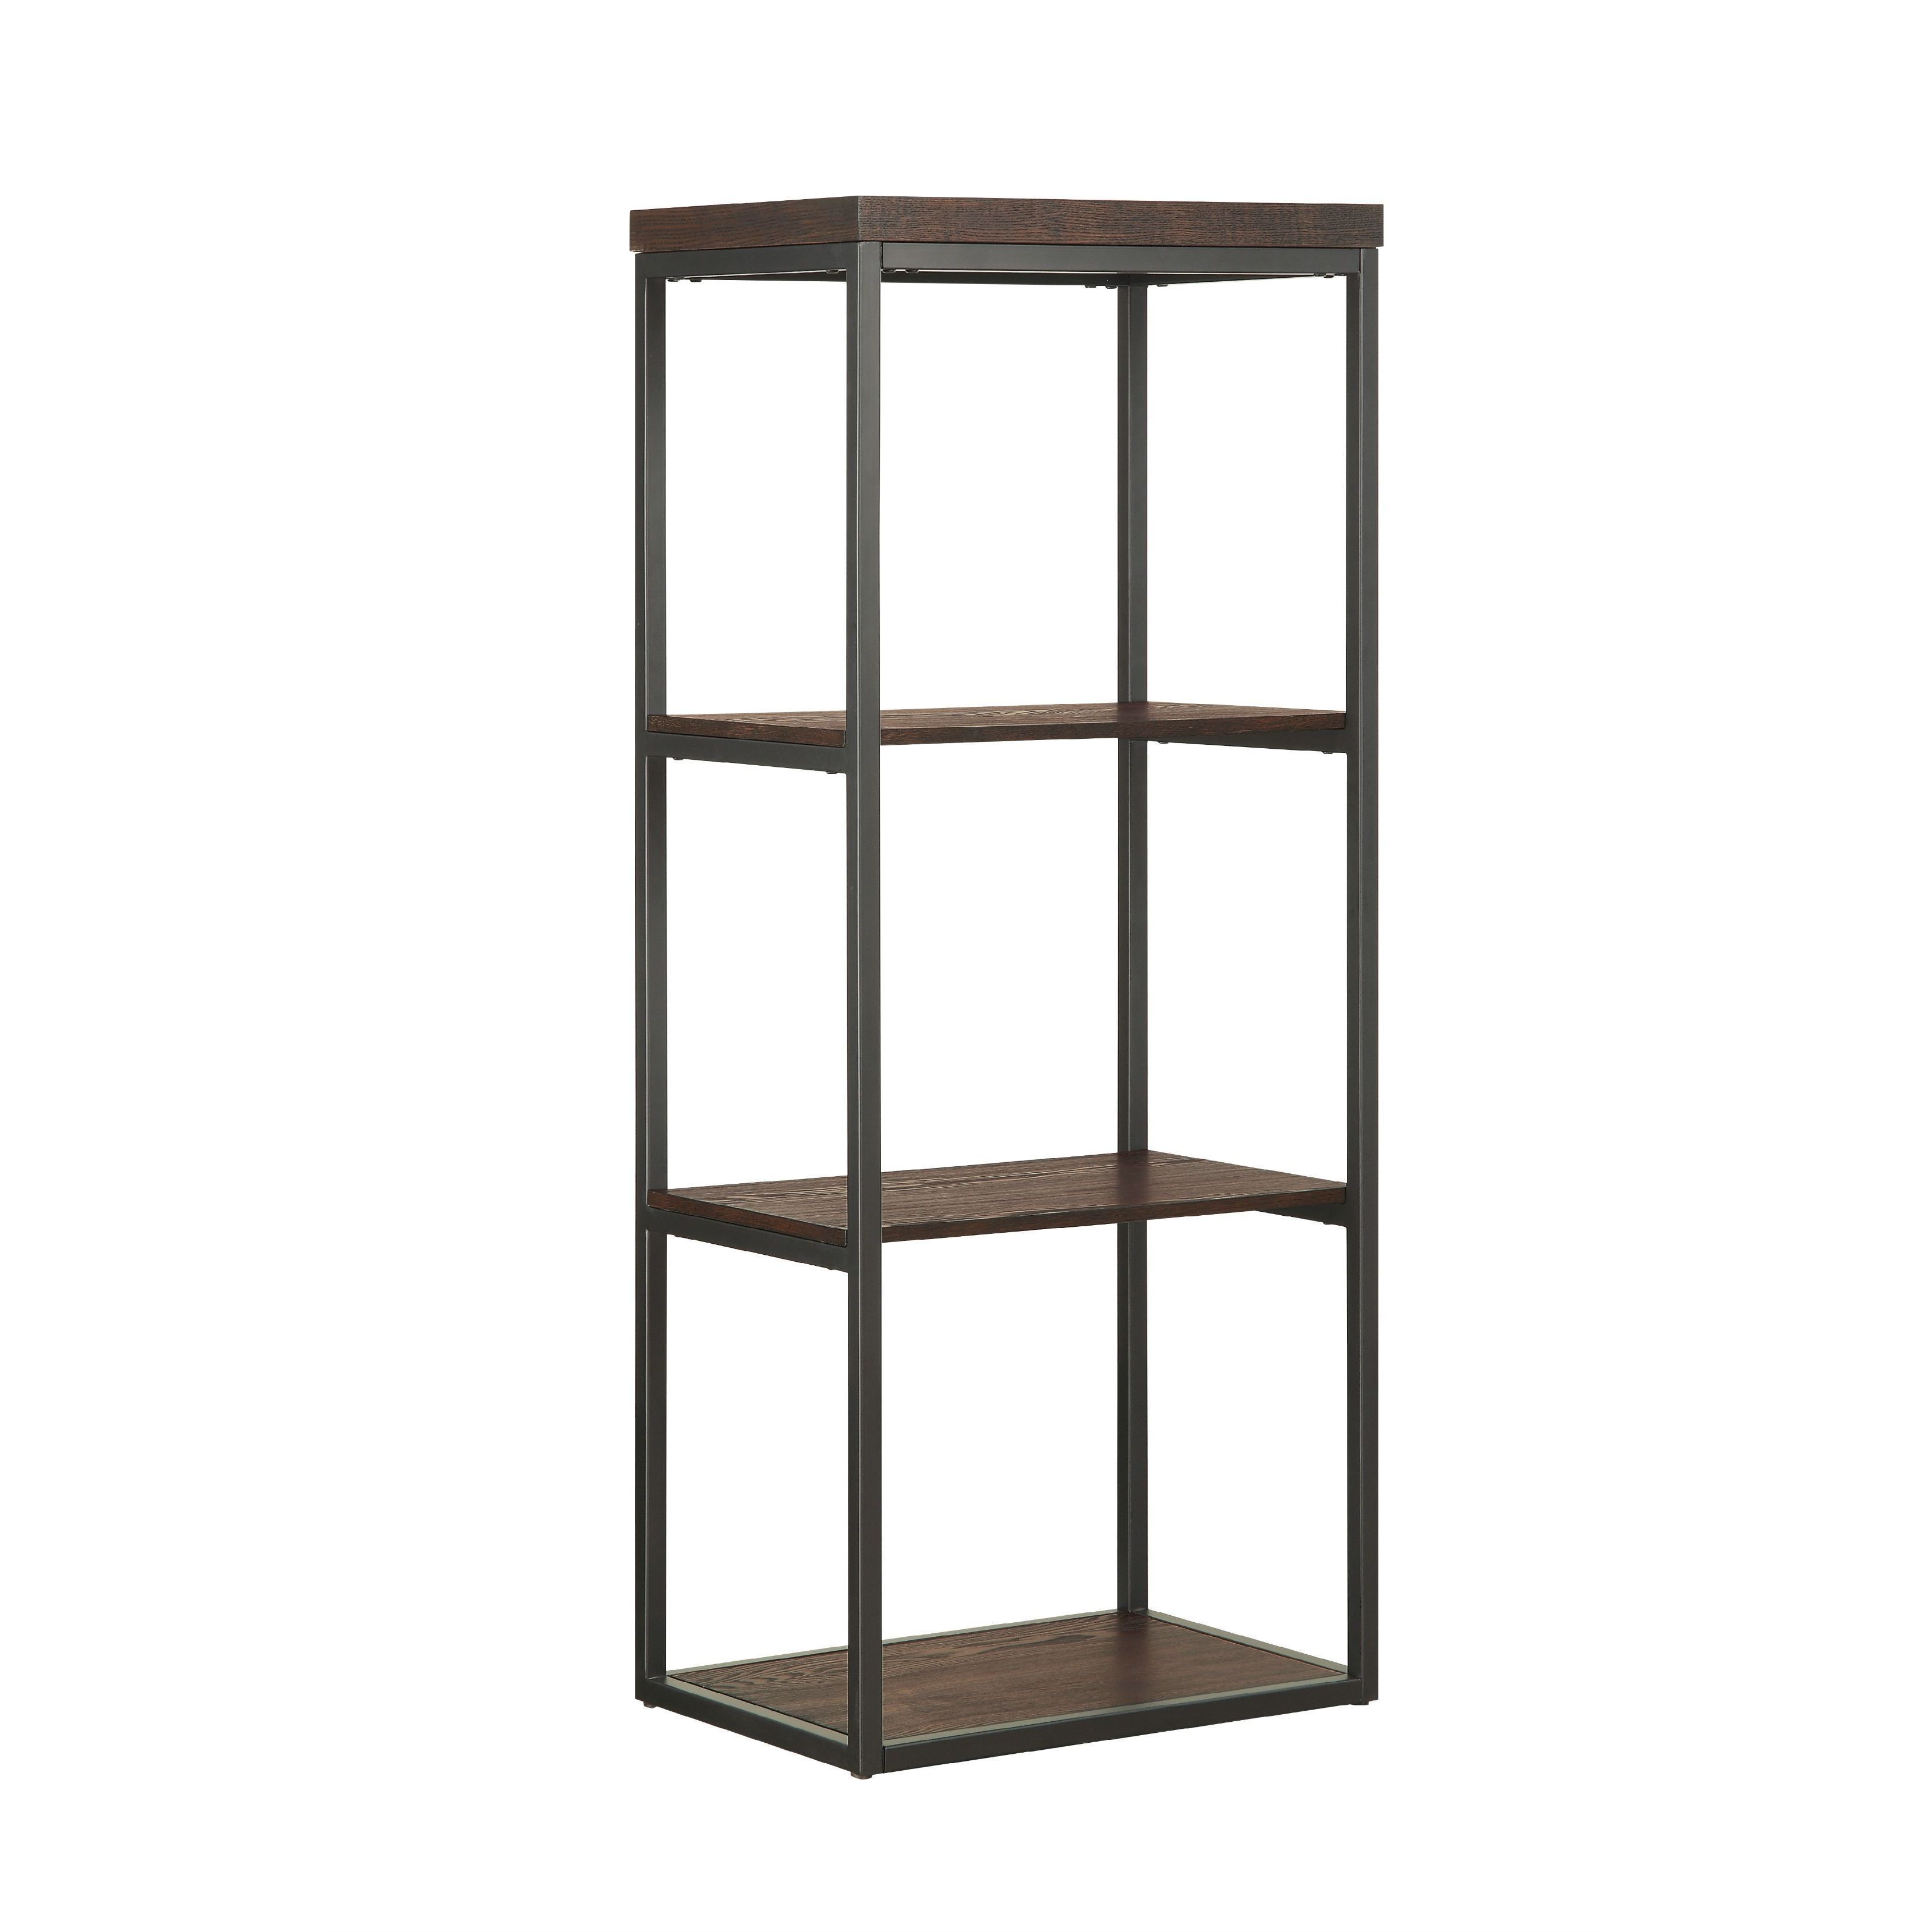 Industrial Meets Rustic For Unmatched Style Versatility. With Six Levels Of  Storage And Display Space